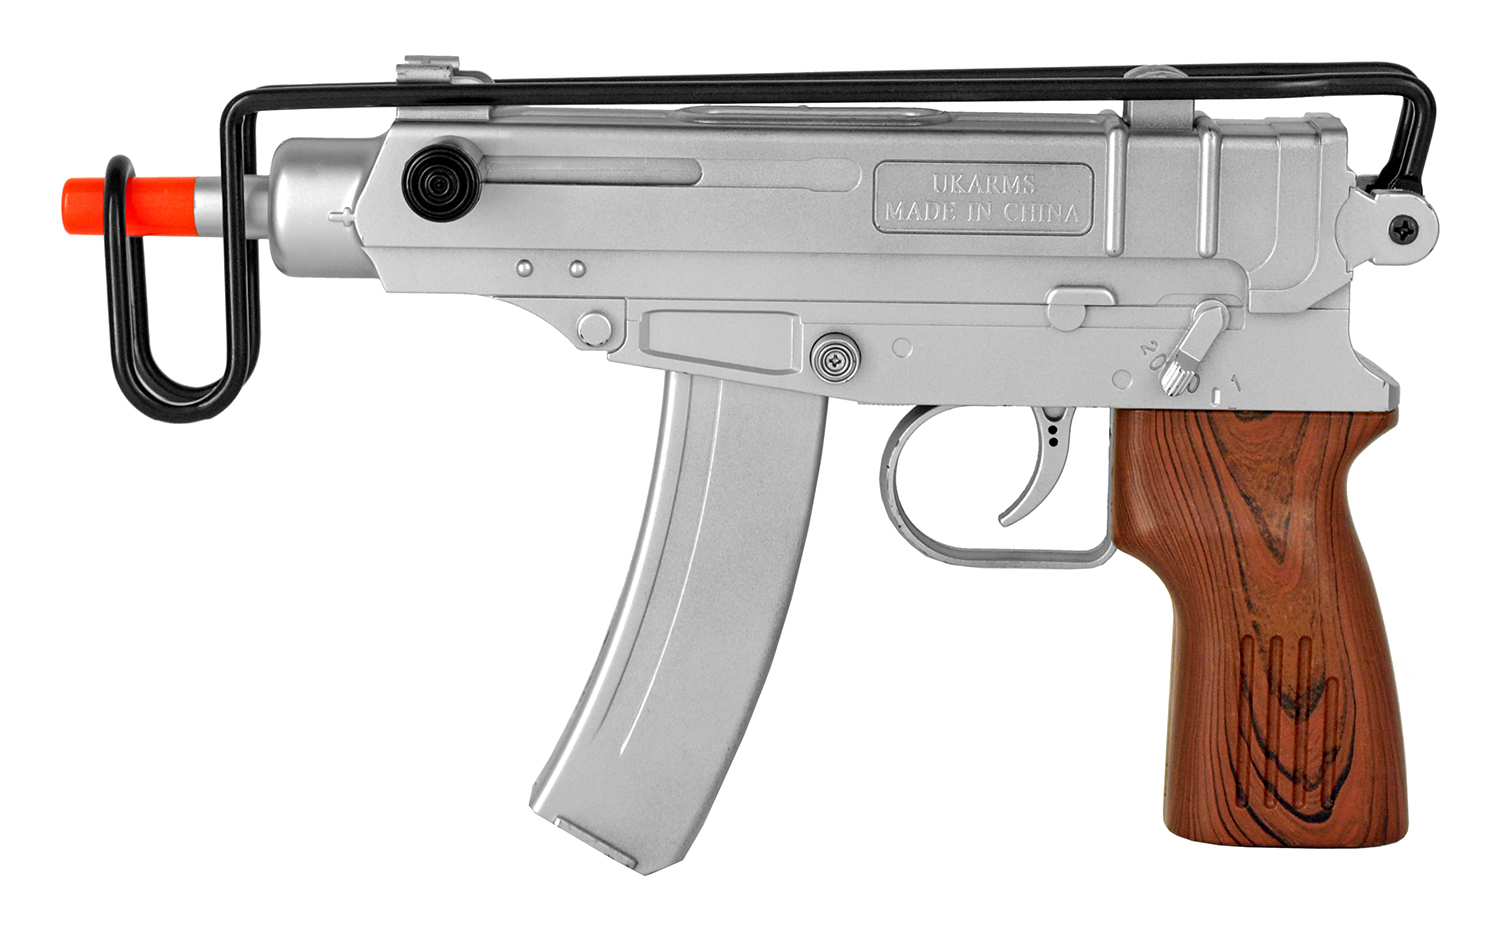 M309A Spring Powered Airsoft Gun - UKARMS